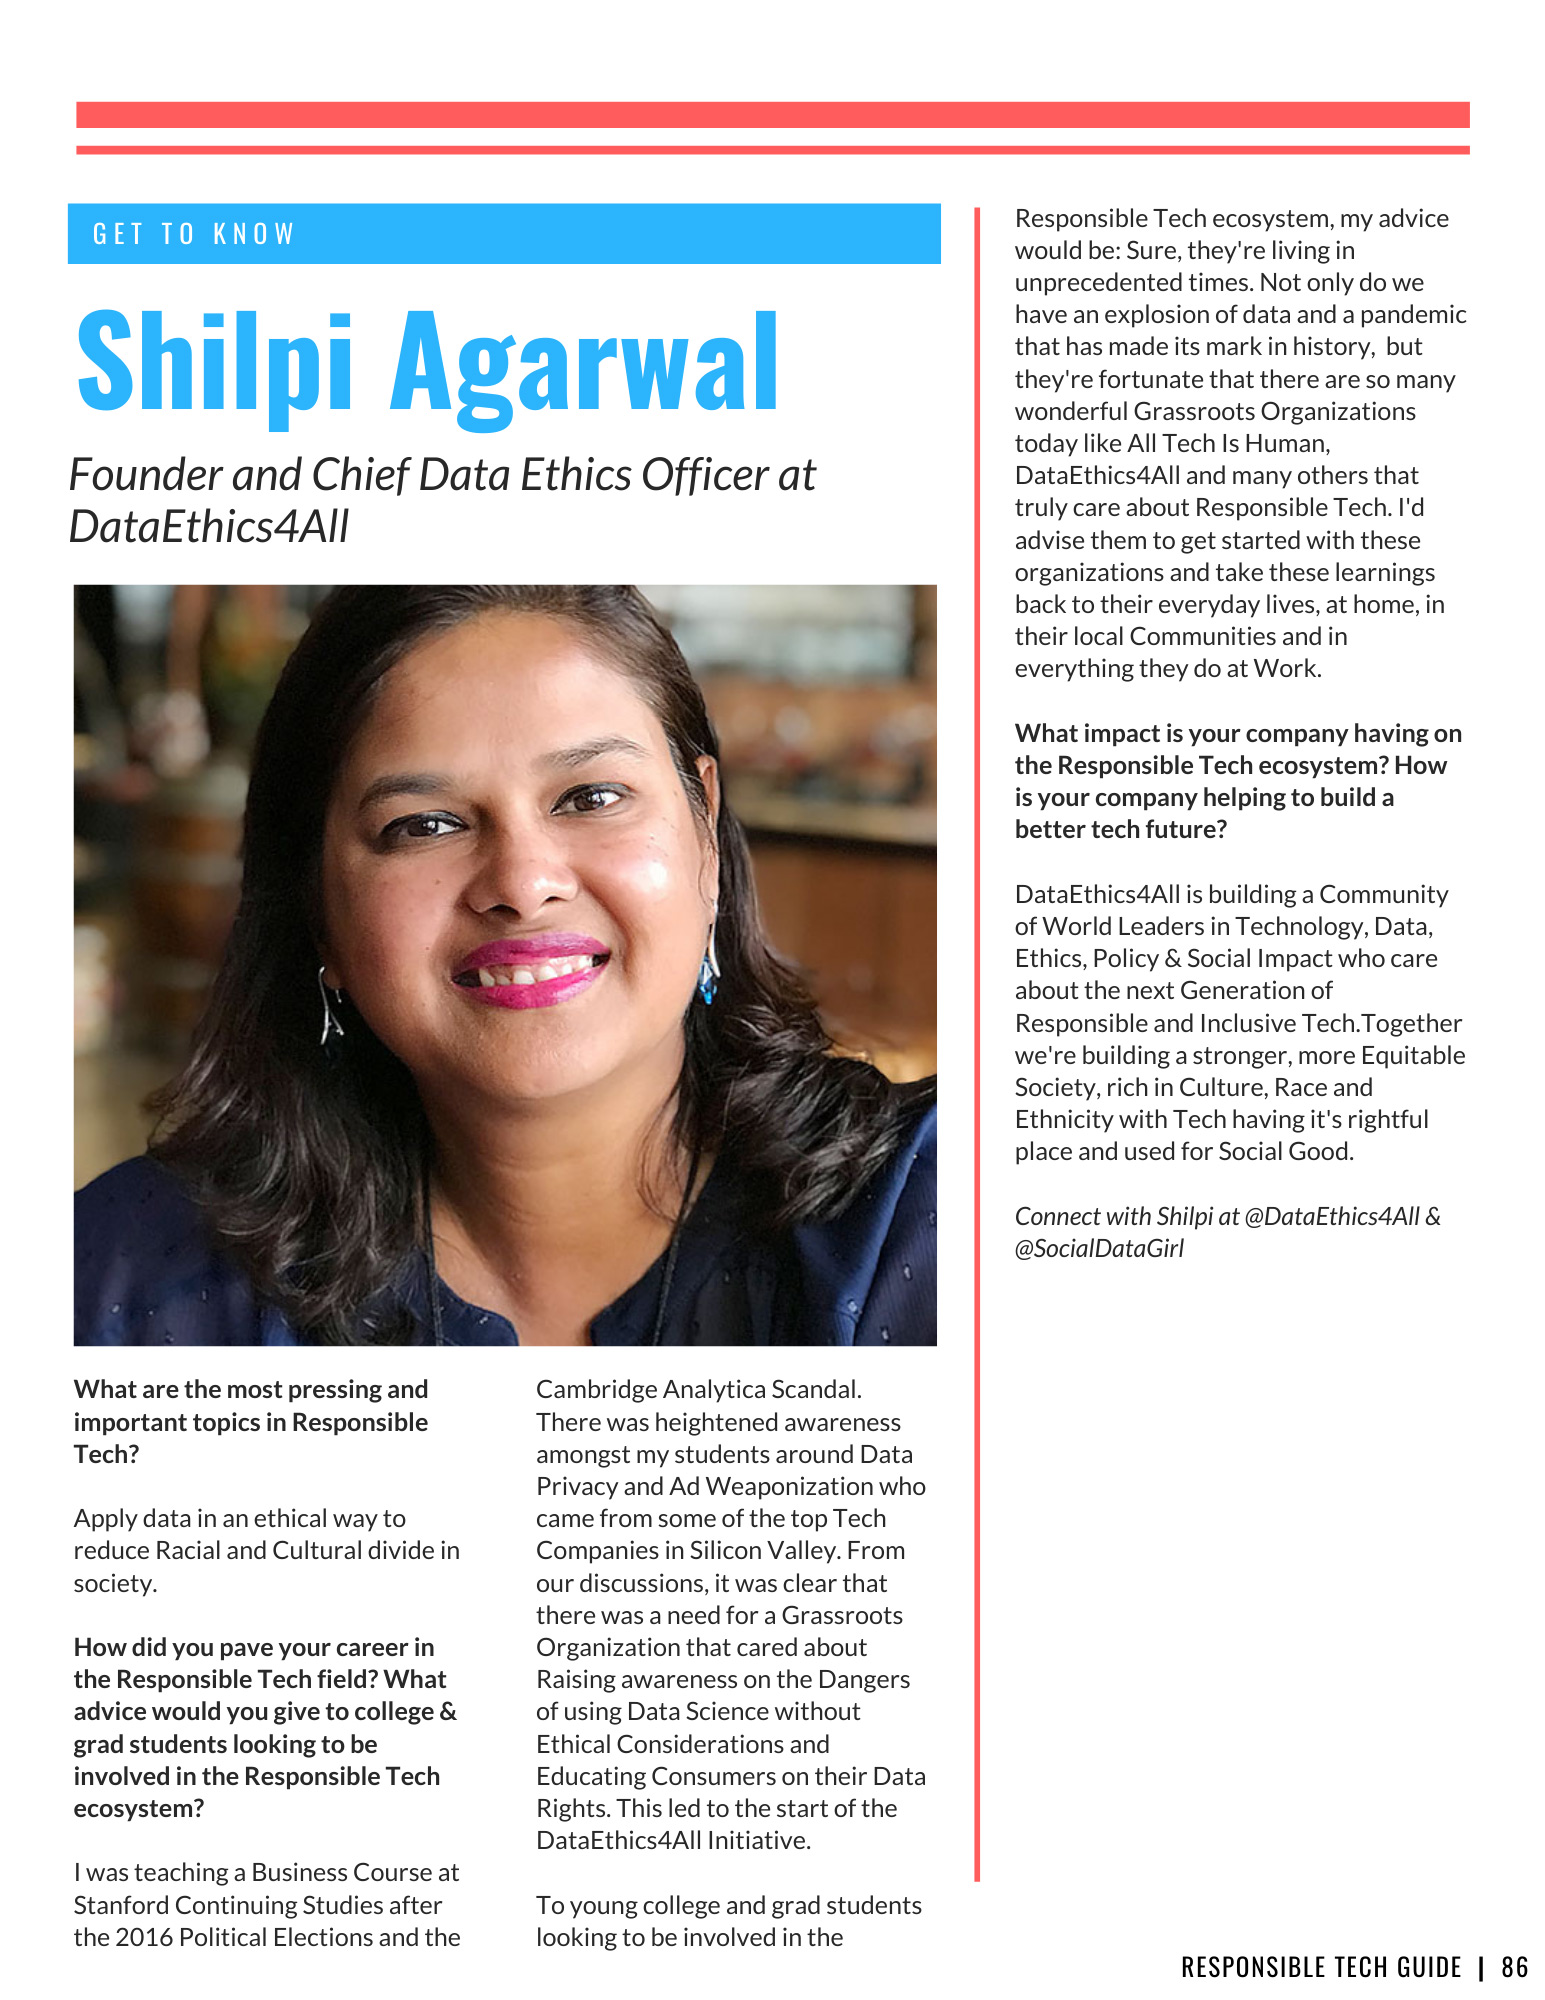 Shilpi-Agarwal_Featured-as-Responsible-Tech-Ecosystem-Builder